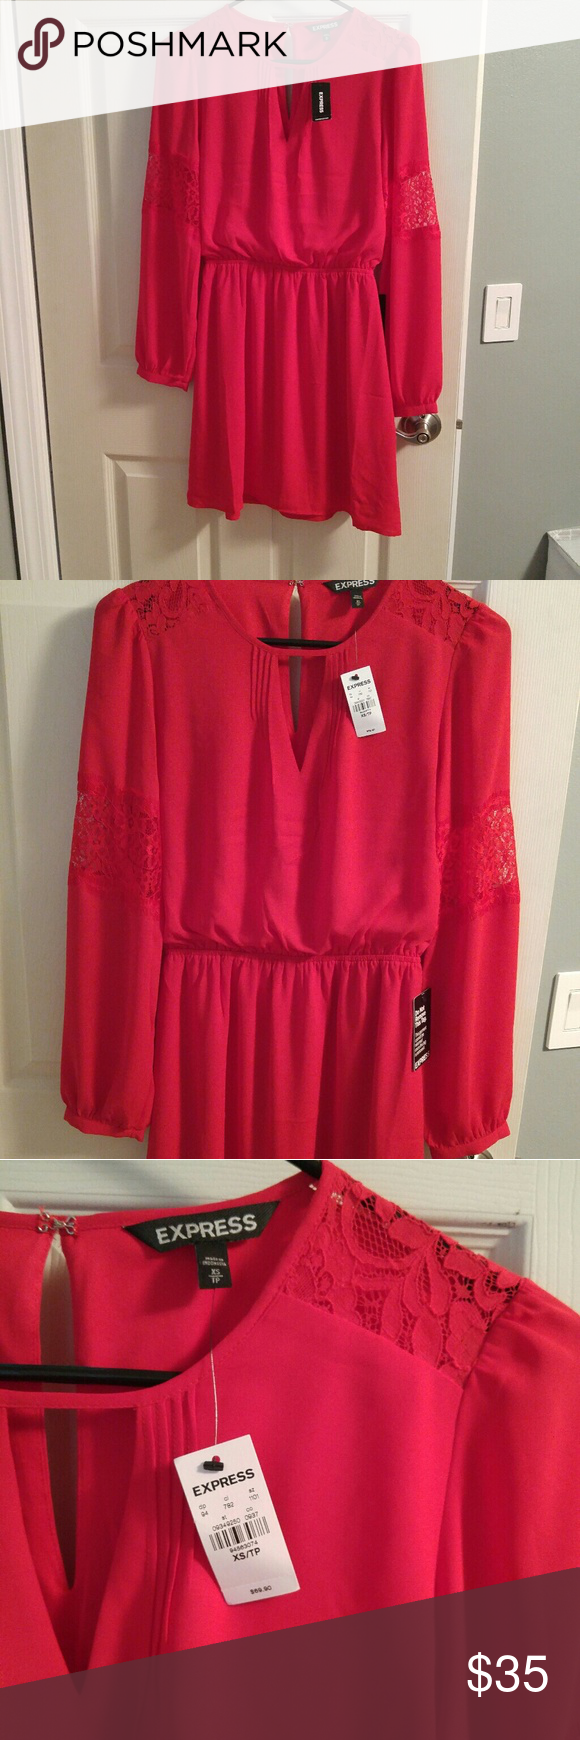 Nwt xs red express dress nwt true red express dresses and front lace